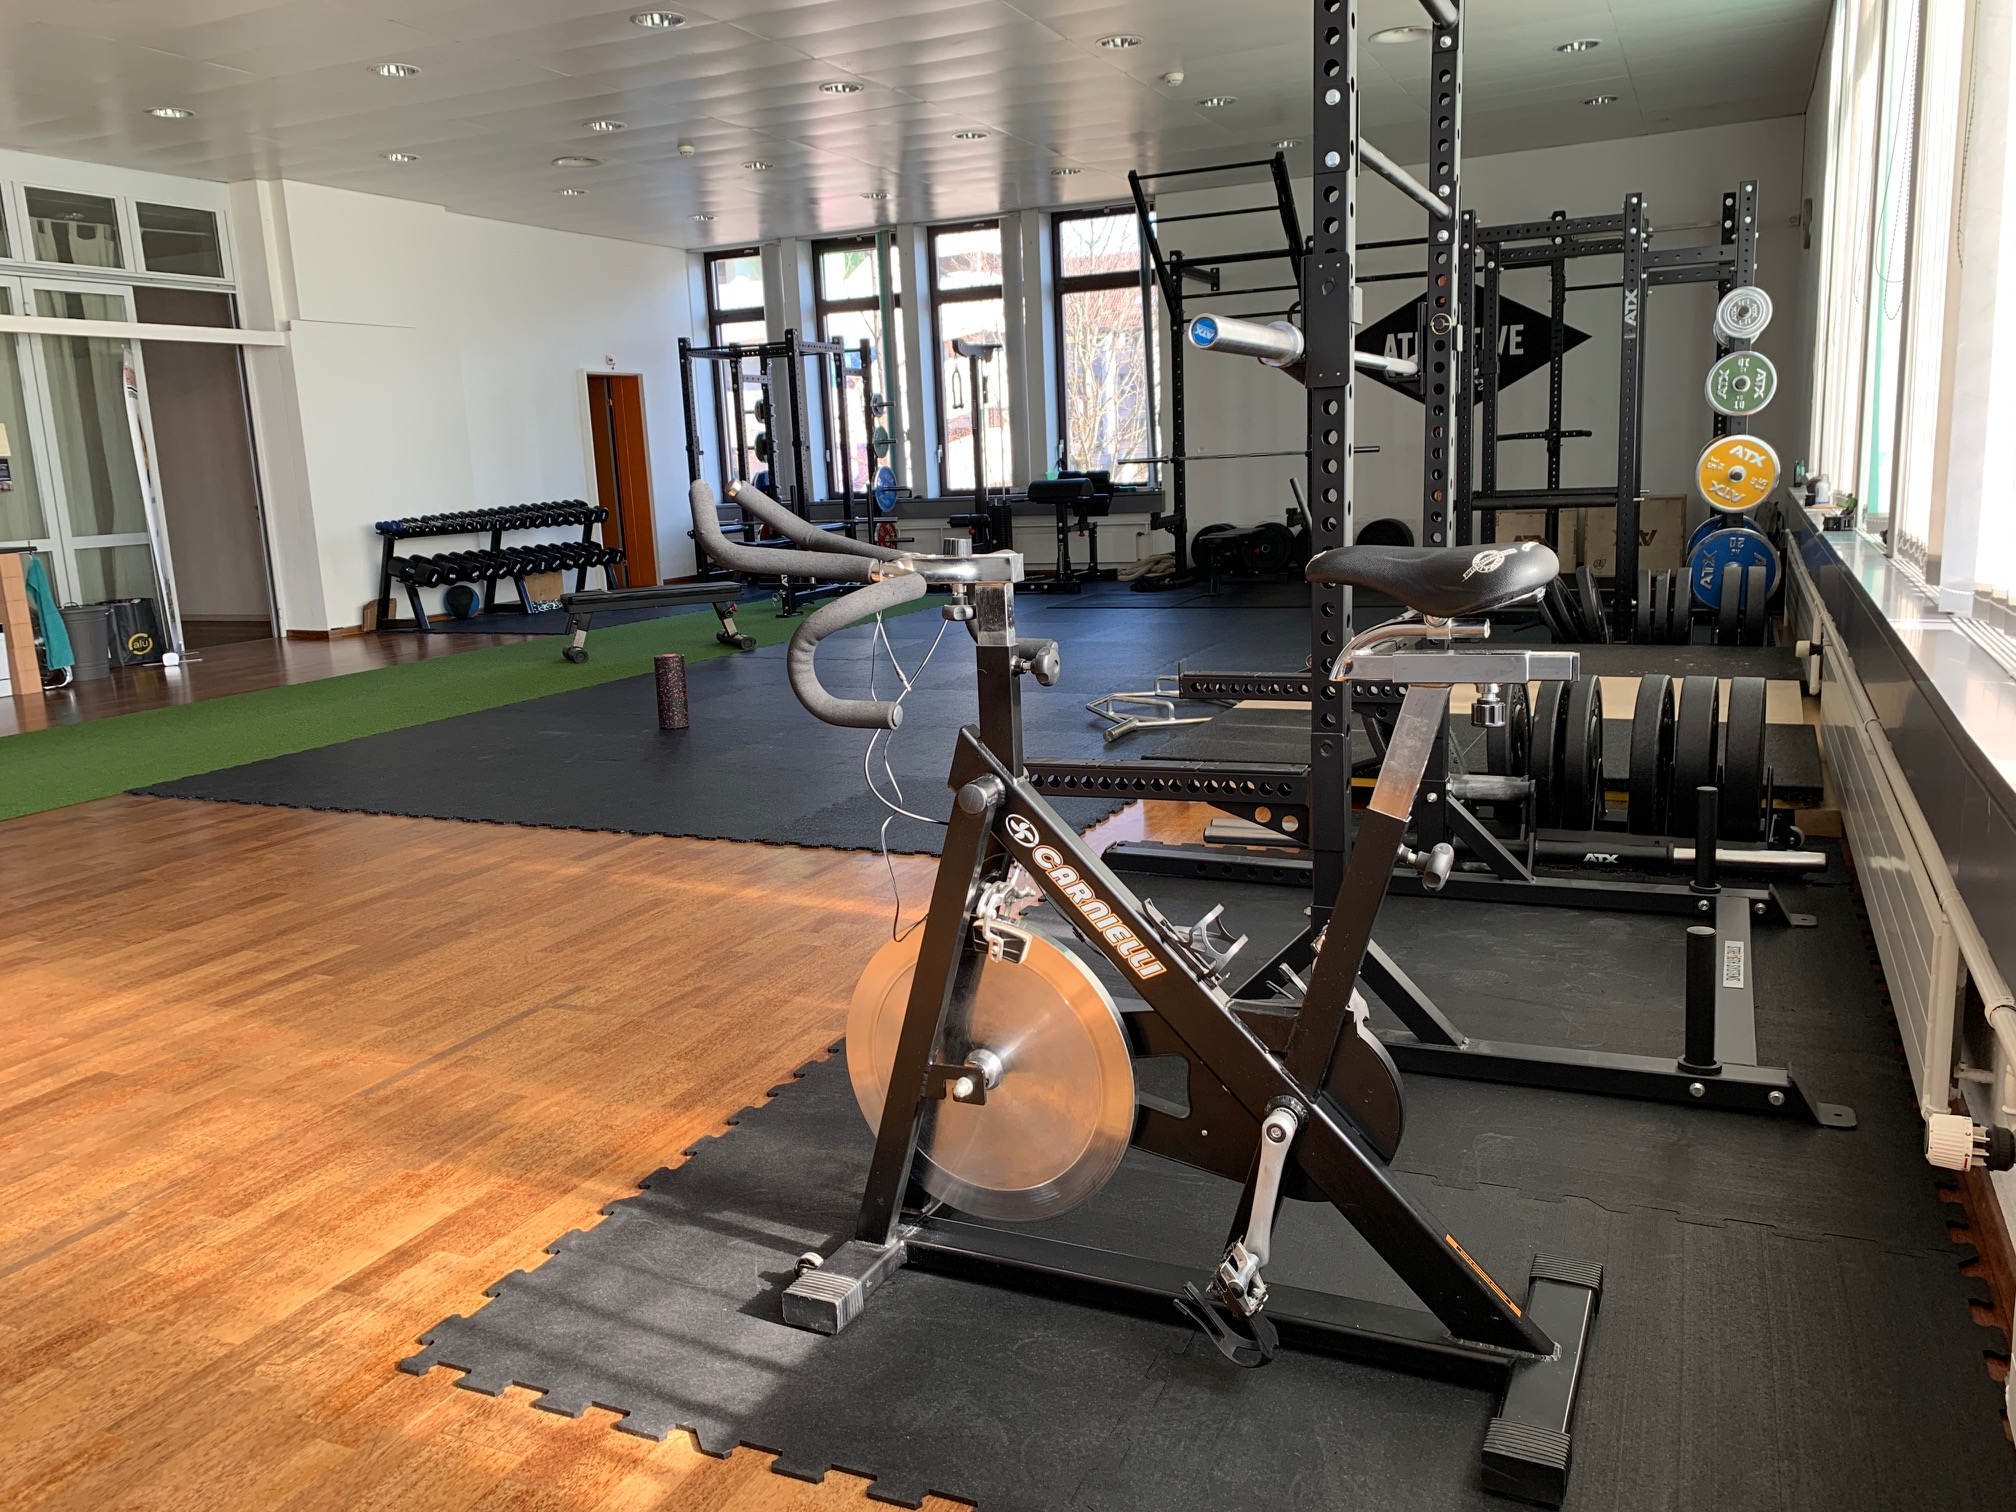 Spinning Bike athletive TrainingThun